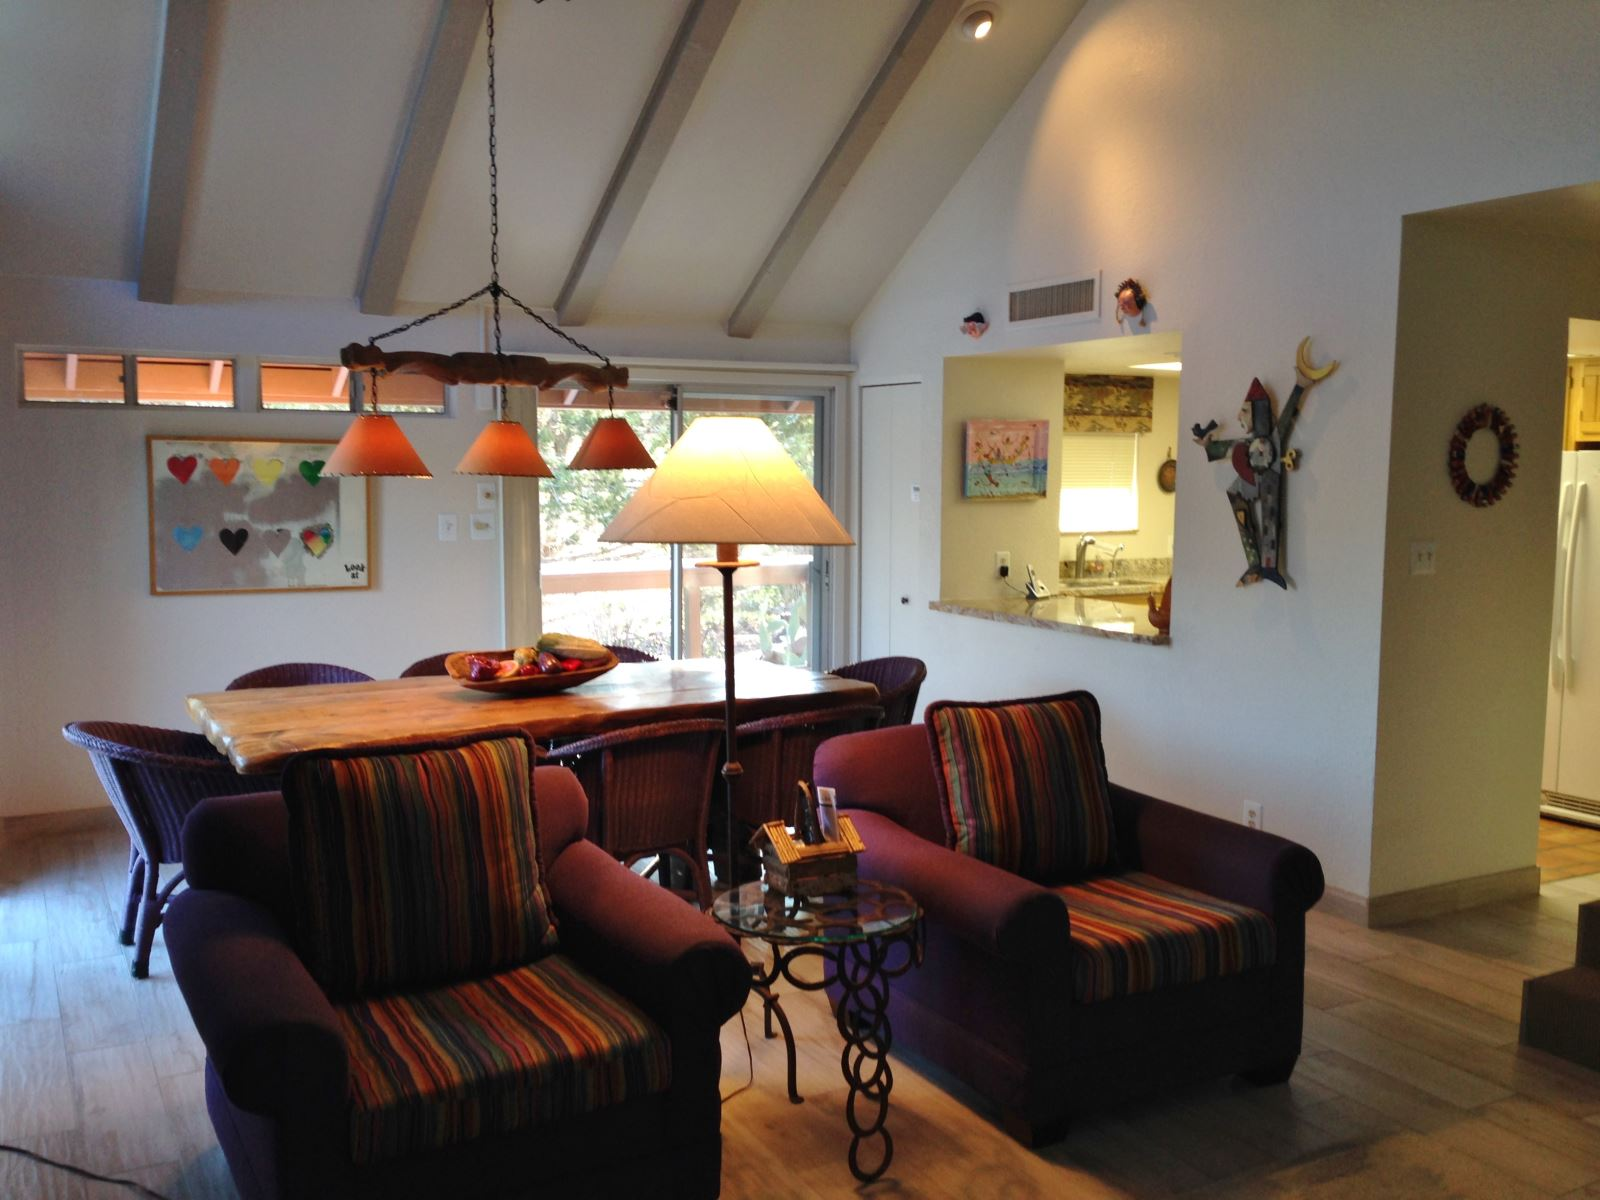 Living Room showing dining room with table  8 seats